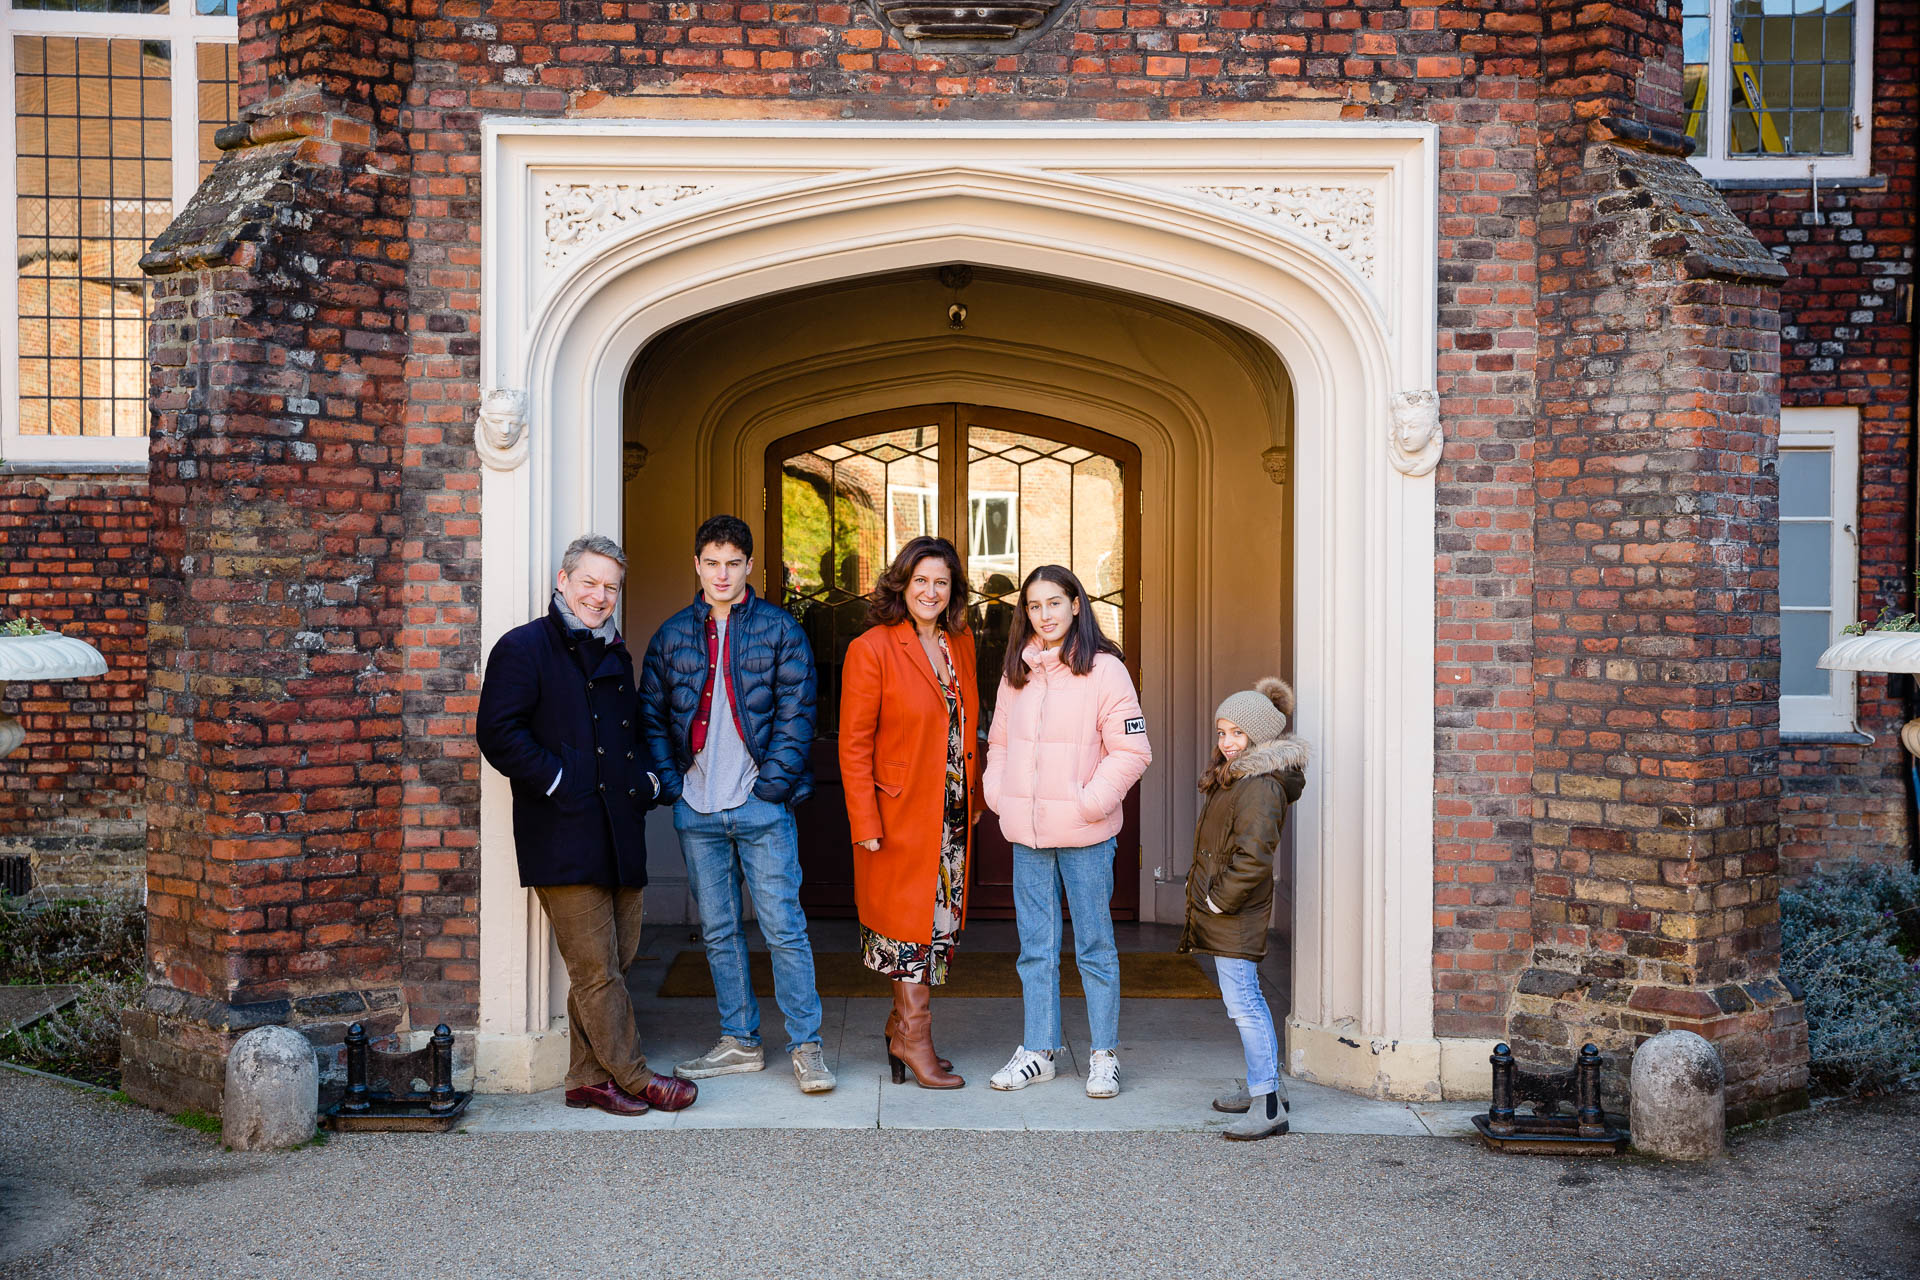 family of 5 posing for family portrait in doorway at Bishop's park